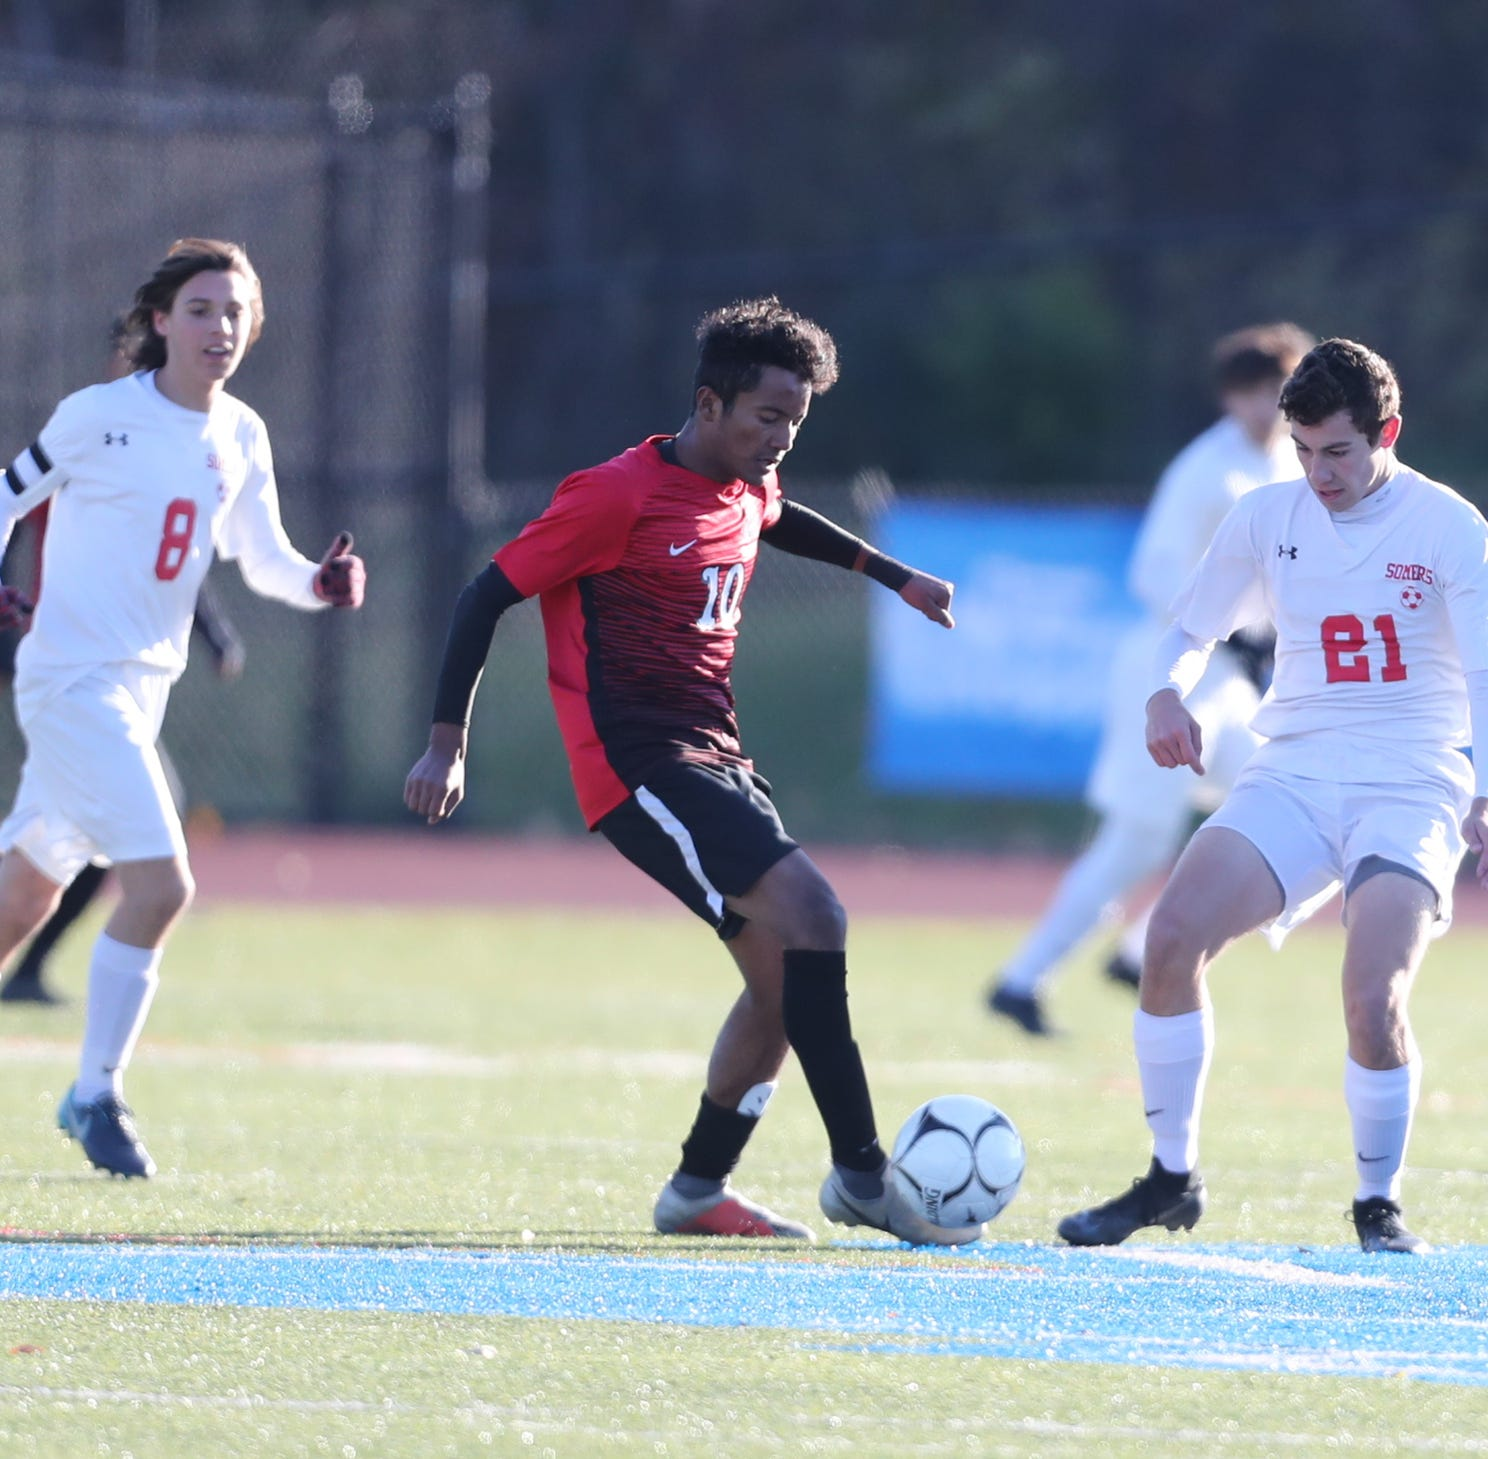 Boys soccer: Playoff run lands Somers on top of the final rankings